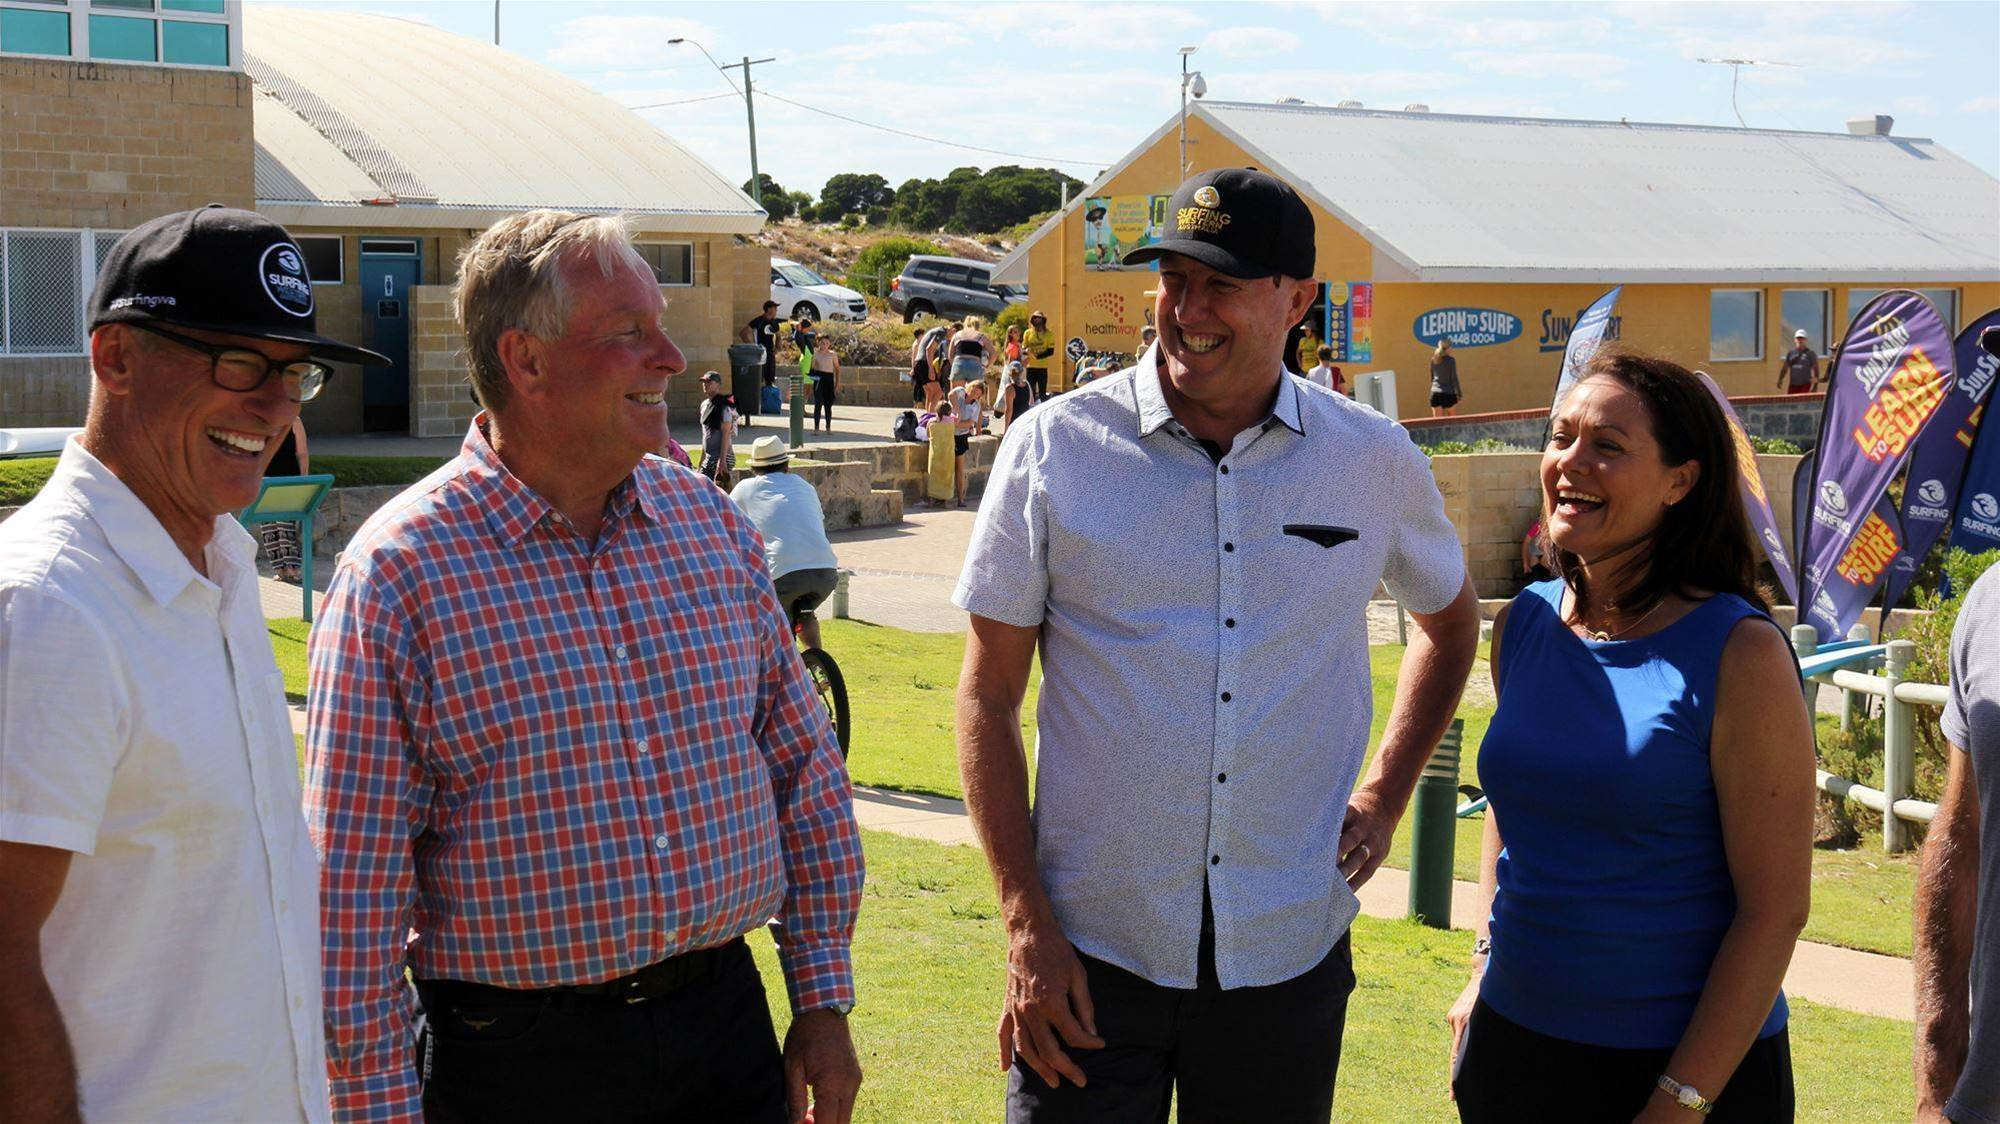 Premier Colin Barnett Promises $3 Million to Surfing WA